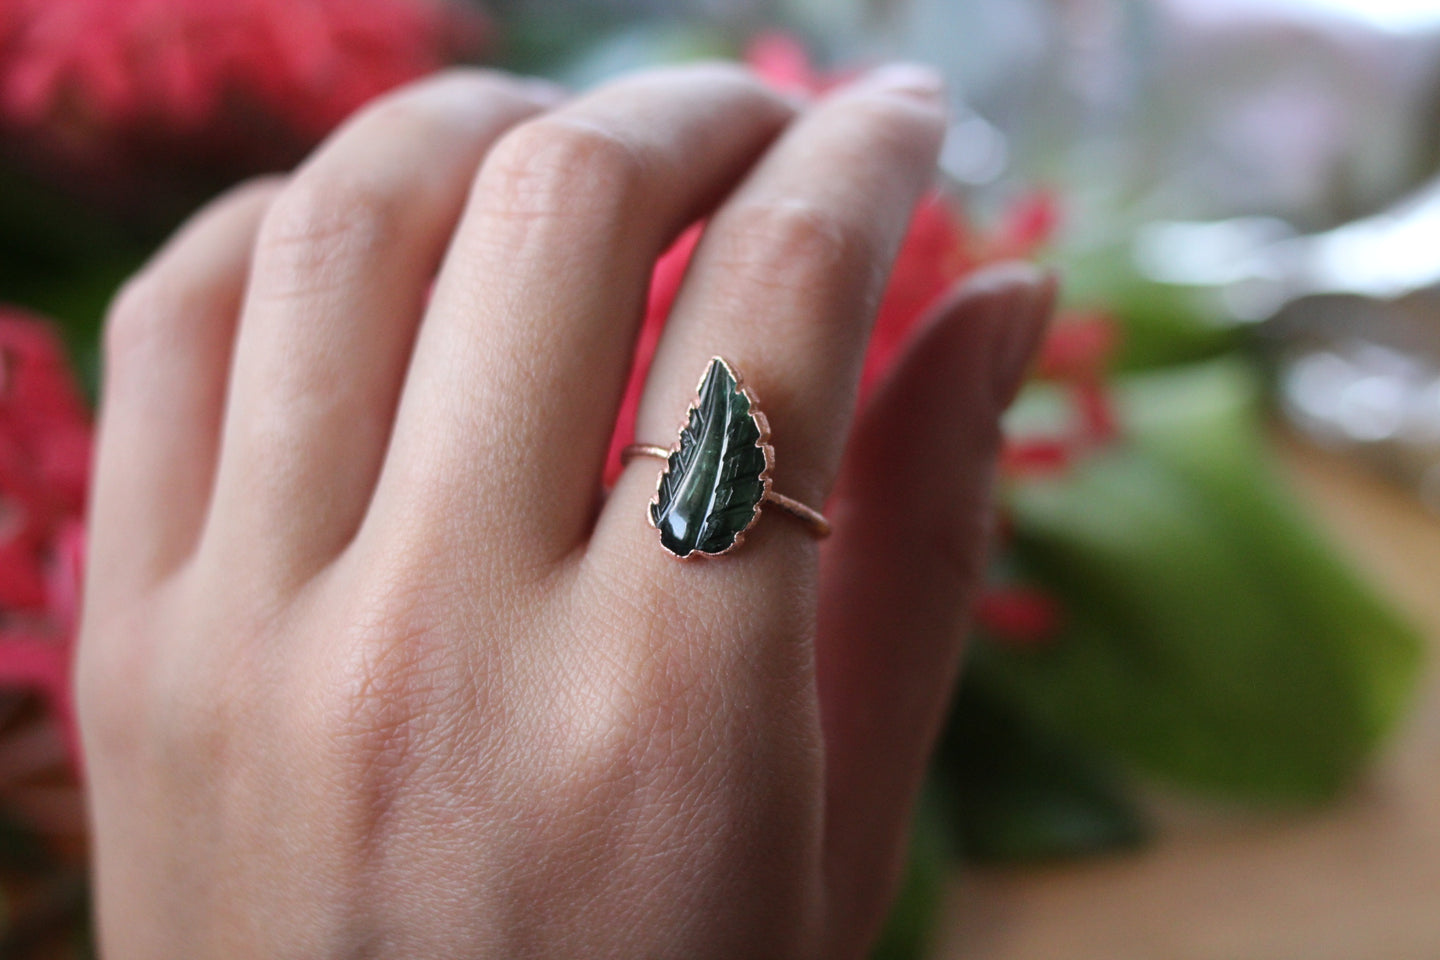 Size 8; Green Tourmaline Leaf Ring